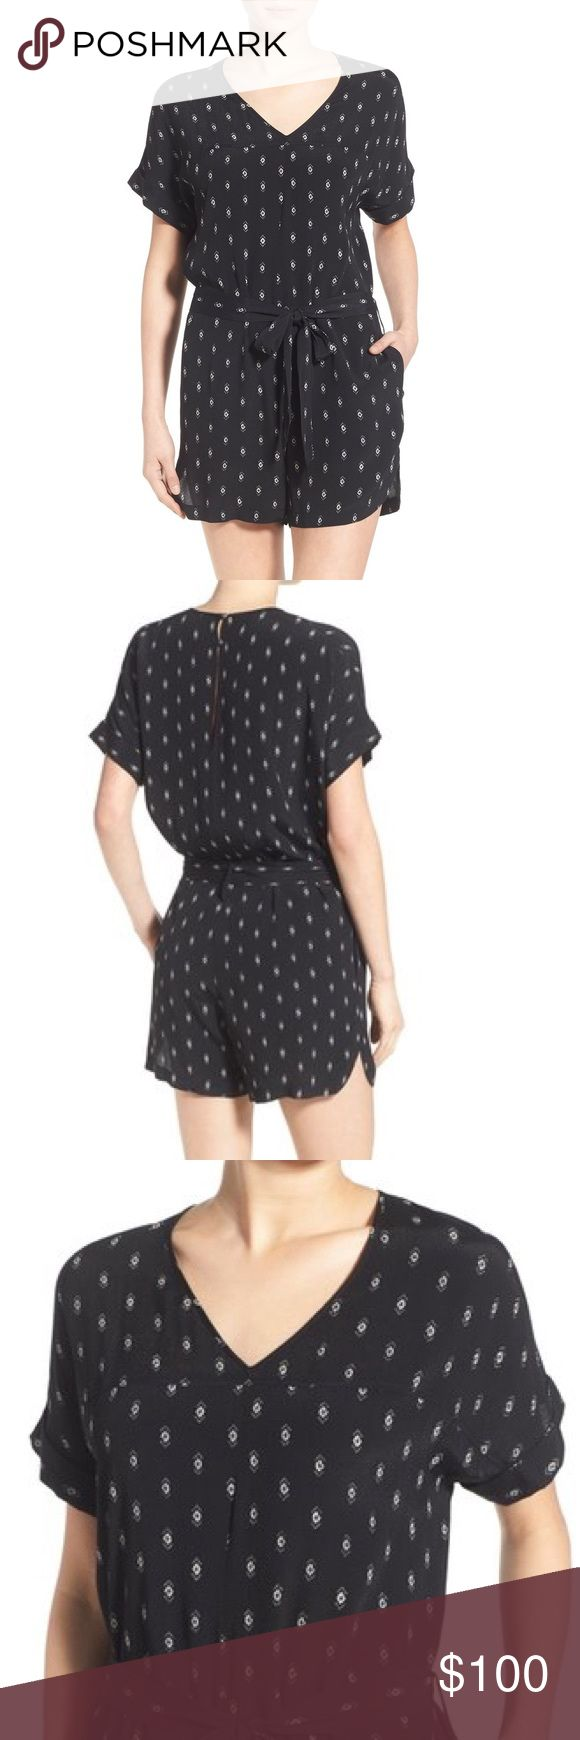 "Madewell v neck romper A dainty, global-inspired print patterns a silky V-neck romper styled with cuffed short sleeves, a waist-cinching tie belt and drapey, dolphin-hem shorts. 33"" length; 3 1/2"" inseam; 26"" leg opening (size Medium). Back keyhole with two-button closure. V-neck. Short sleeves. Tie belt. Side on-seam pockets. 100% viscose. Dry clean. By Madewell; imported. Madewell Pants Jumpsuits & Rompers"